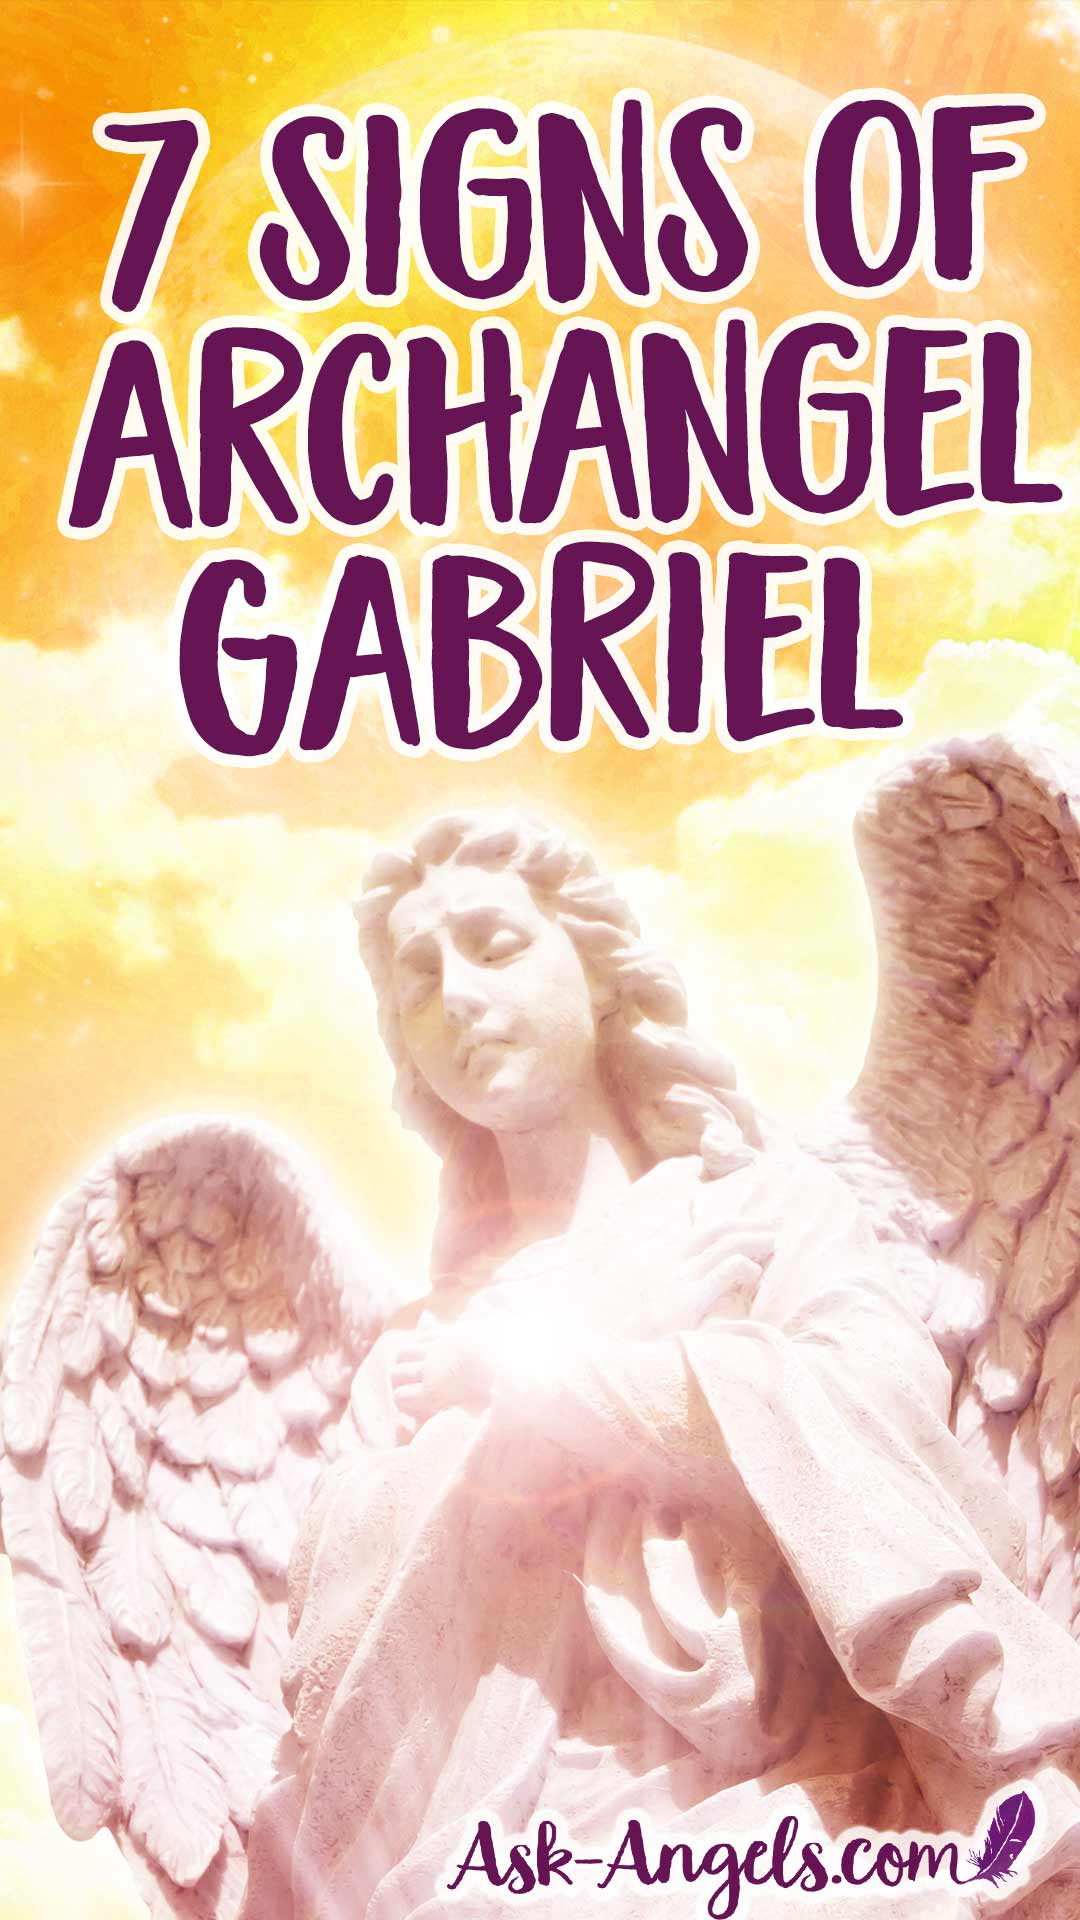 Top 7 Signs of Archangel Gabriel